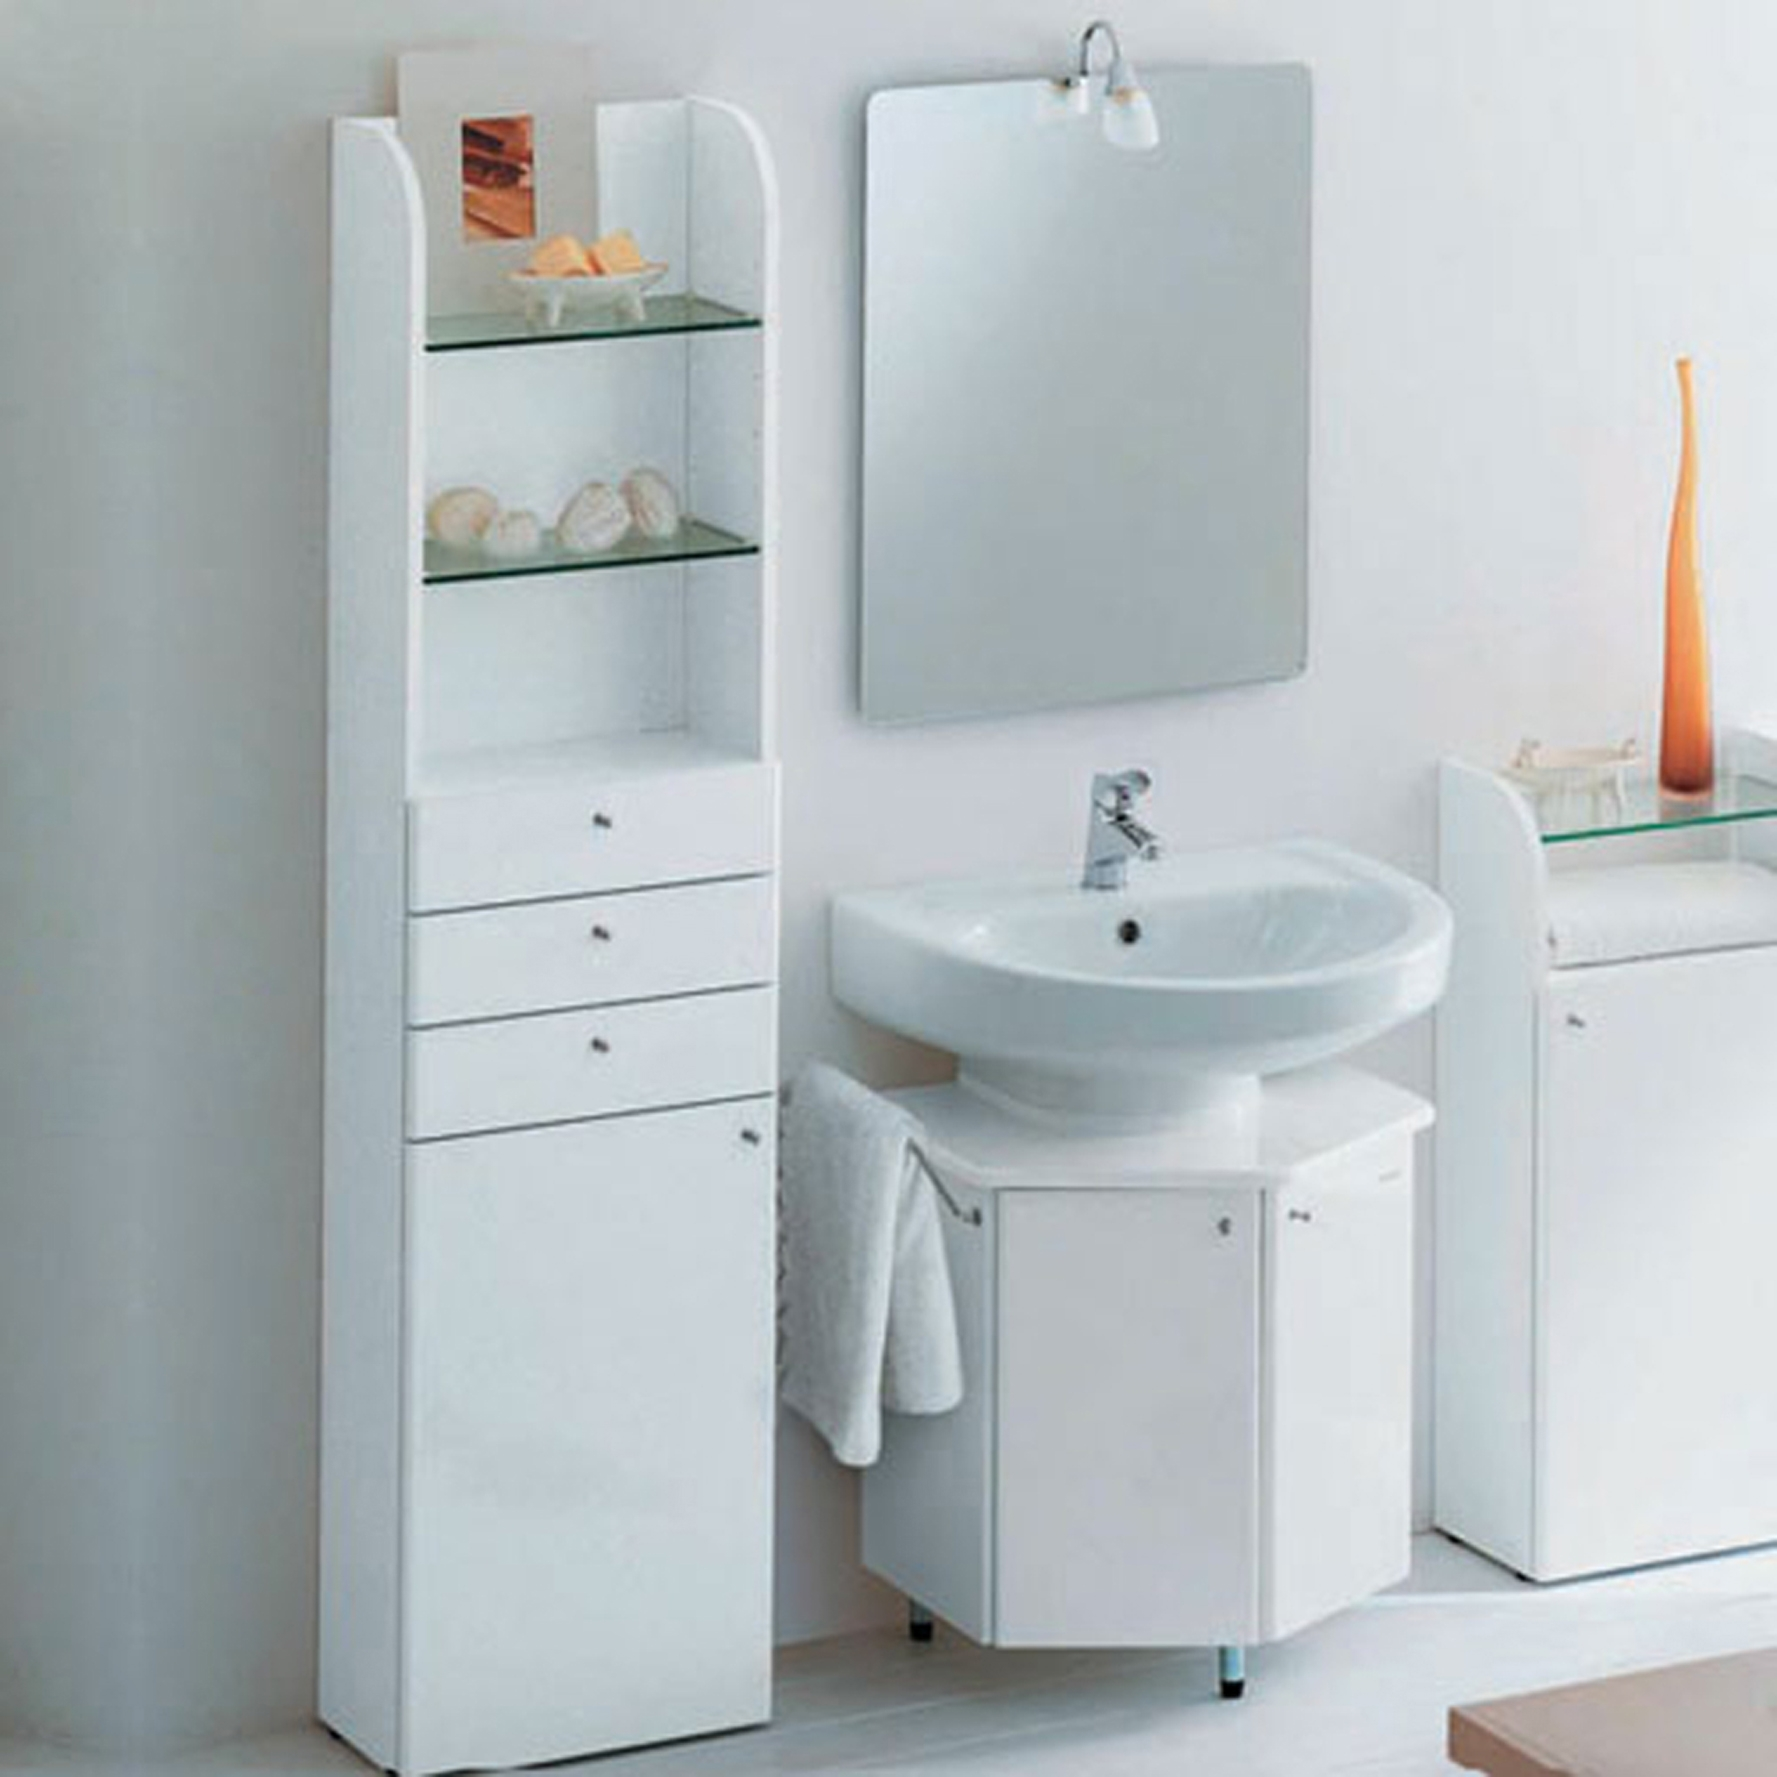 Bathroom Floor Cabinet For Small Spacesbathroom small storage cabinet ideas stand alone cabinets wall